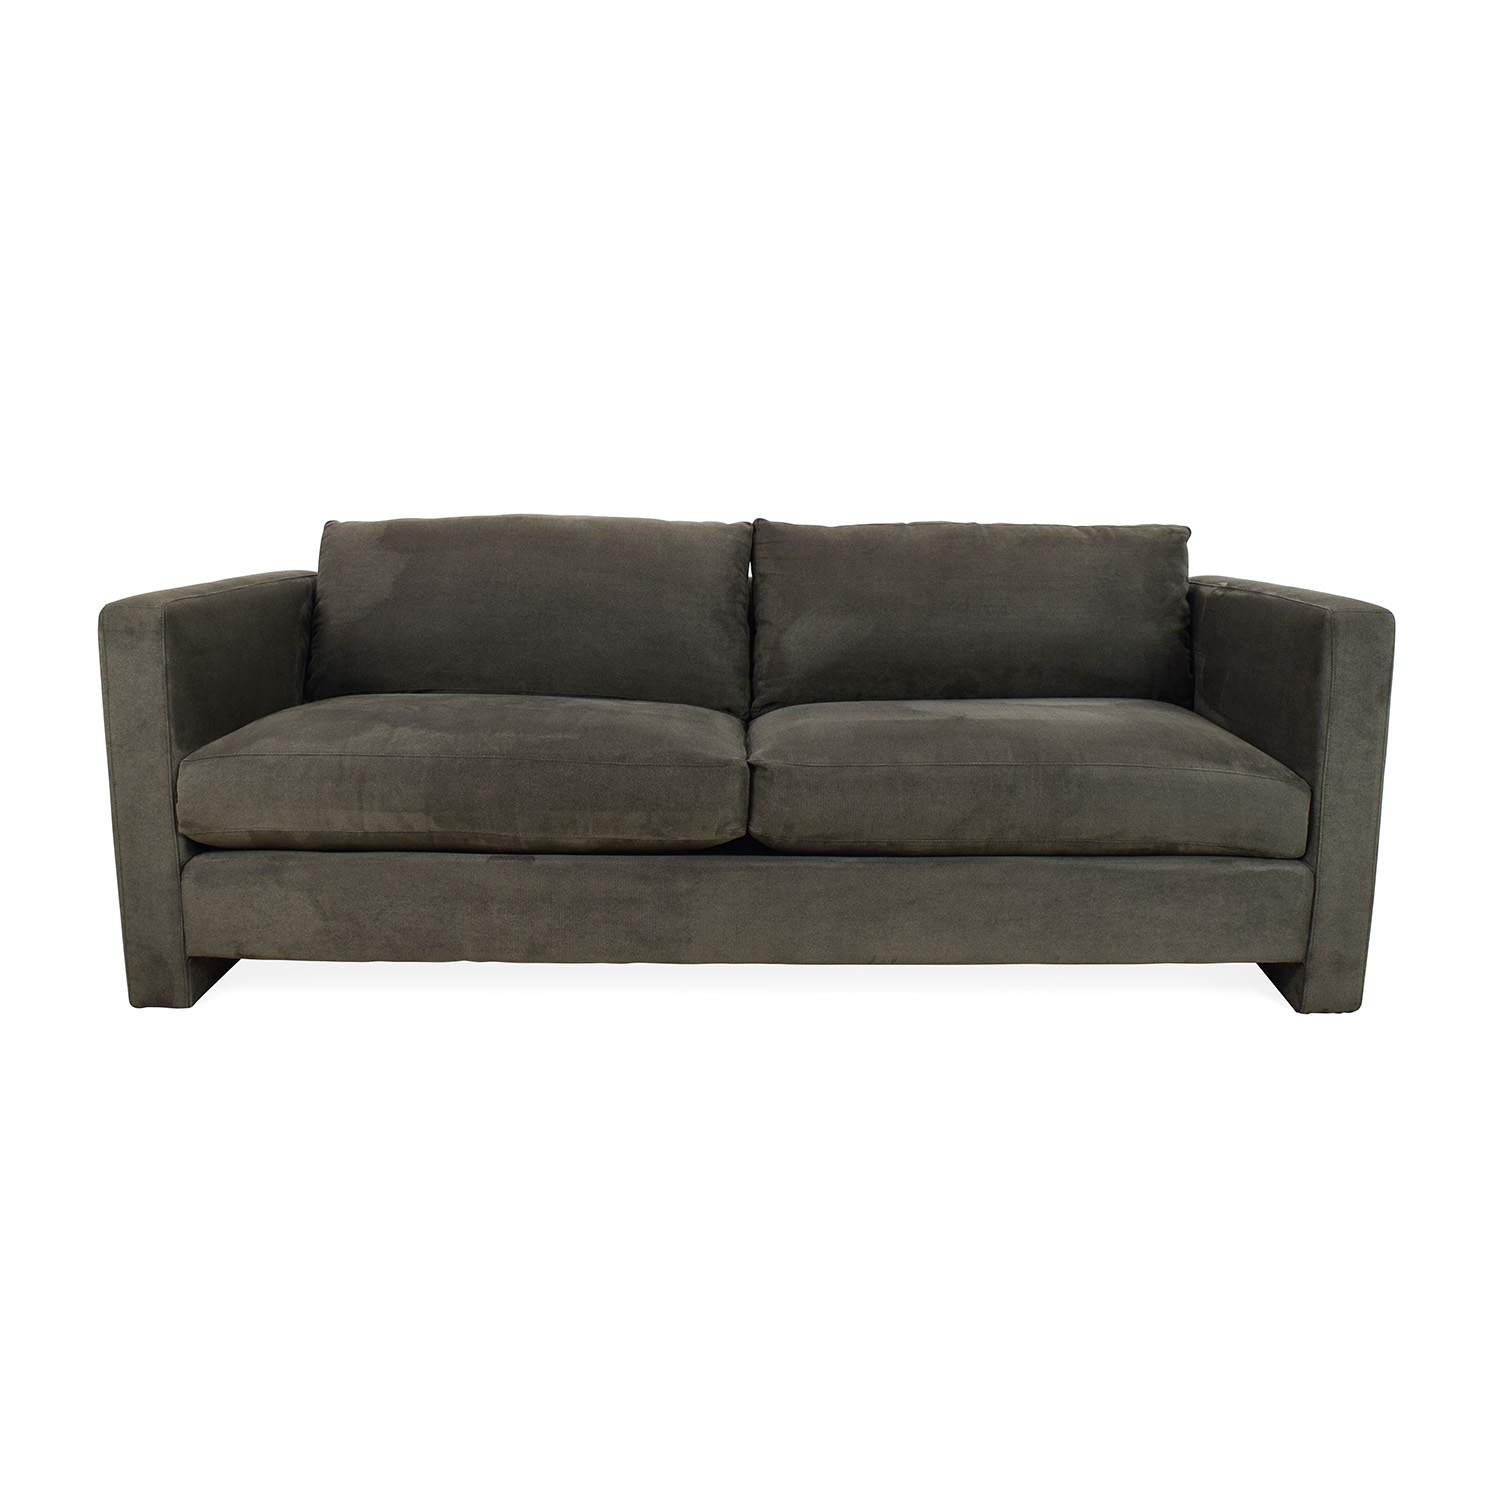 Buying A Second Hand Sofa Buy Second Hand Sofa Uk Miketsai Co